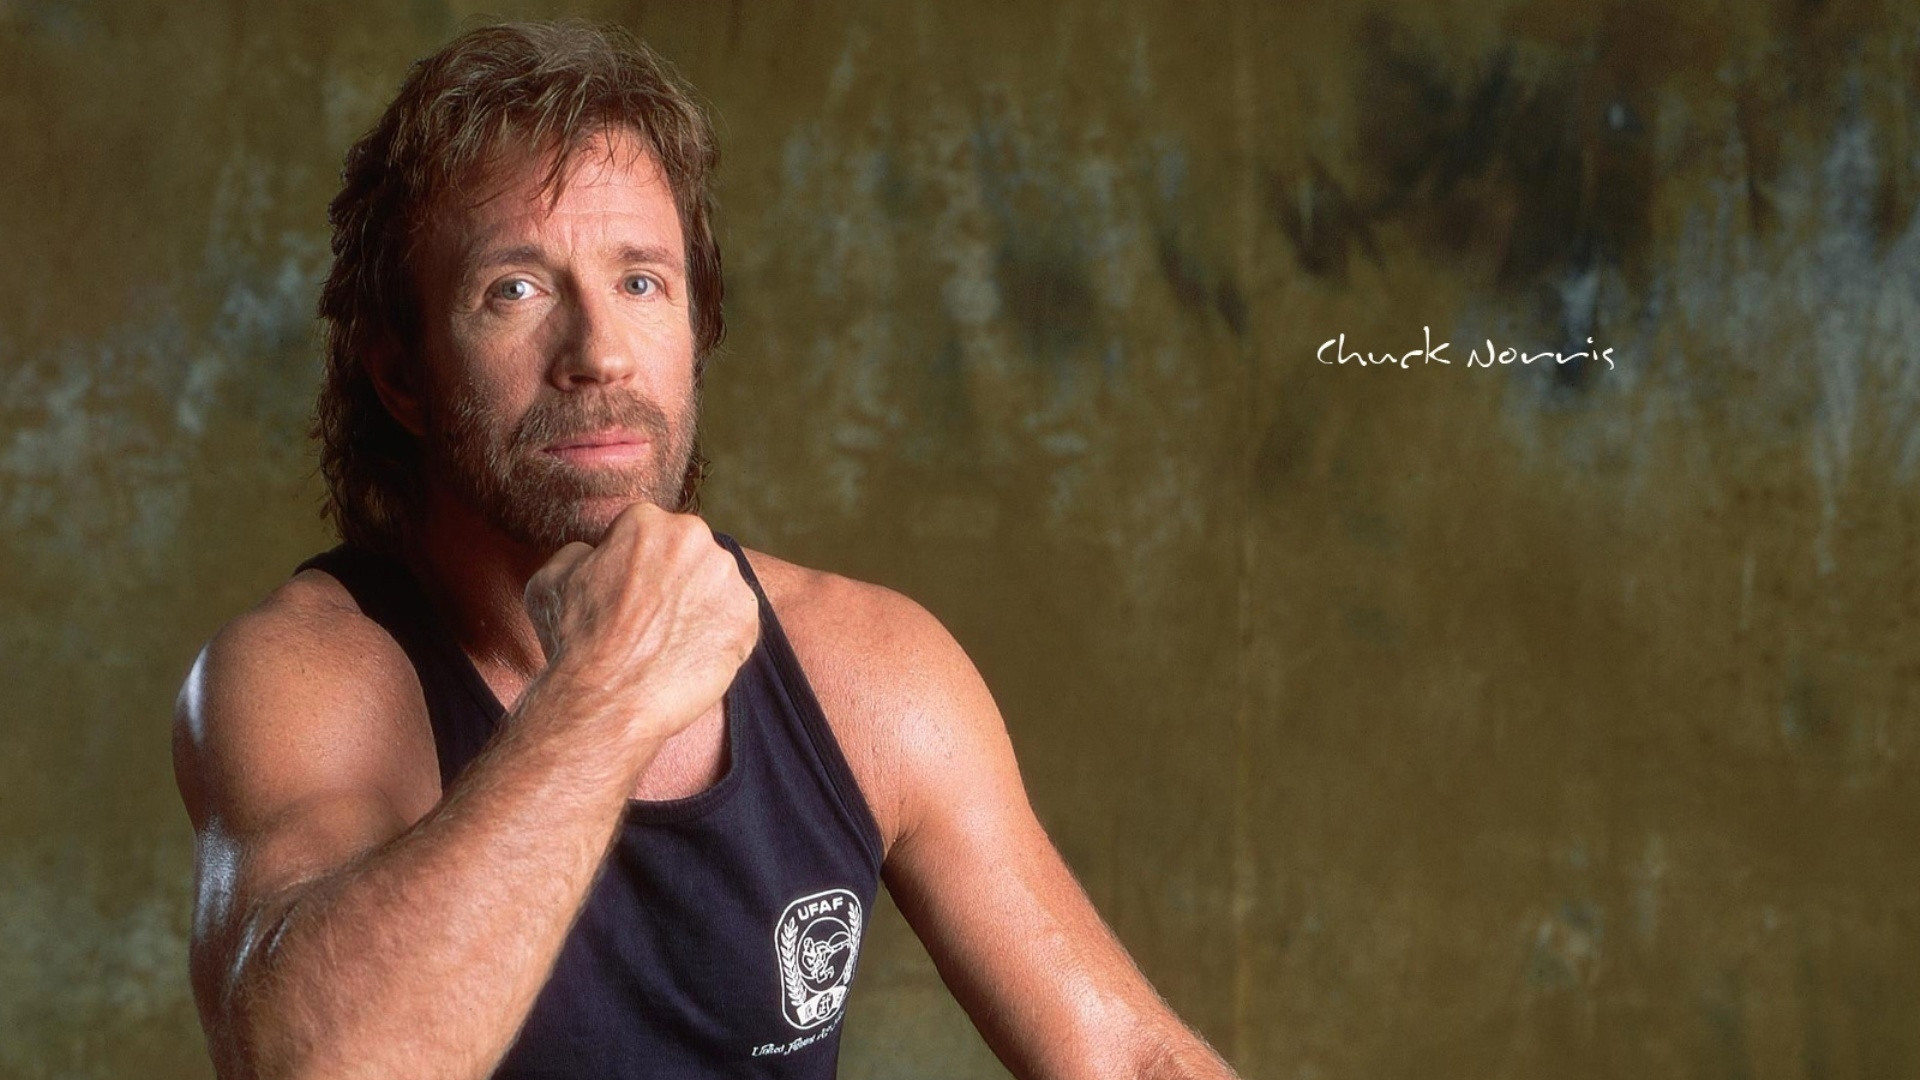 1920x1080  Wallpaper chuck norris, man, actor, shirt, celebrity, hollywood